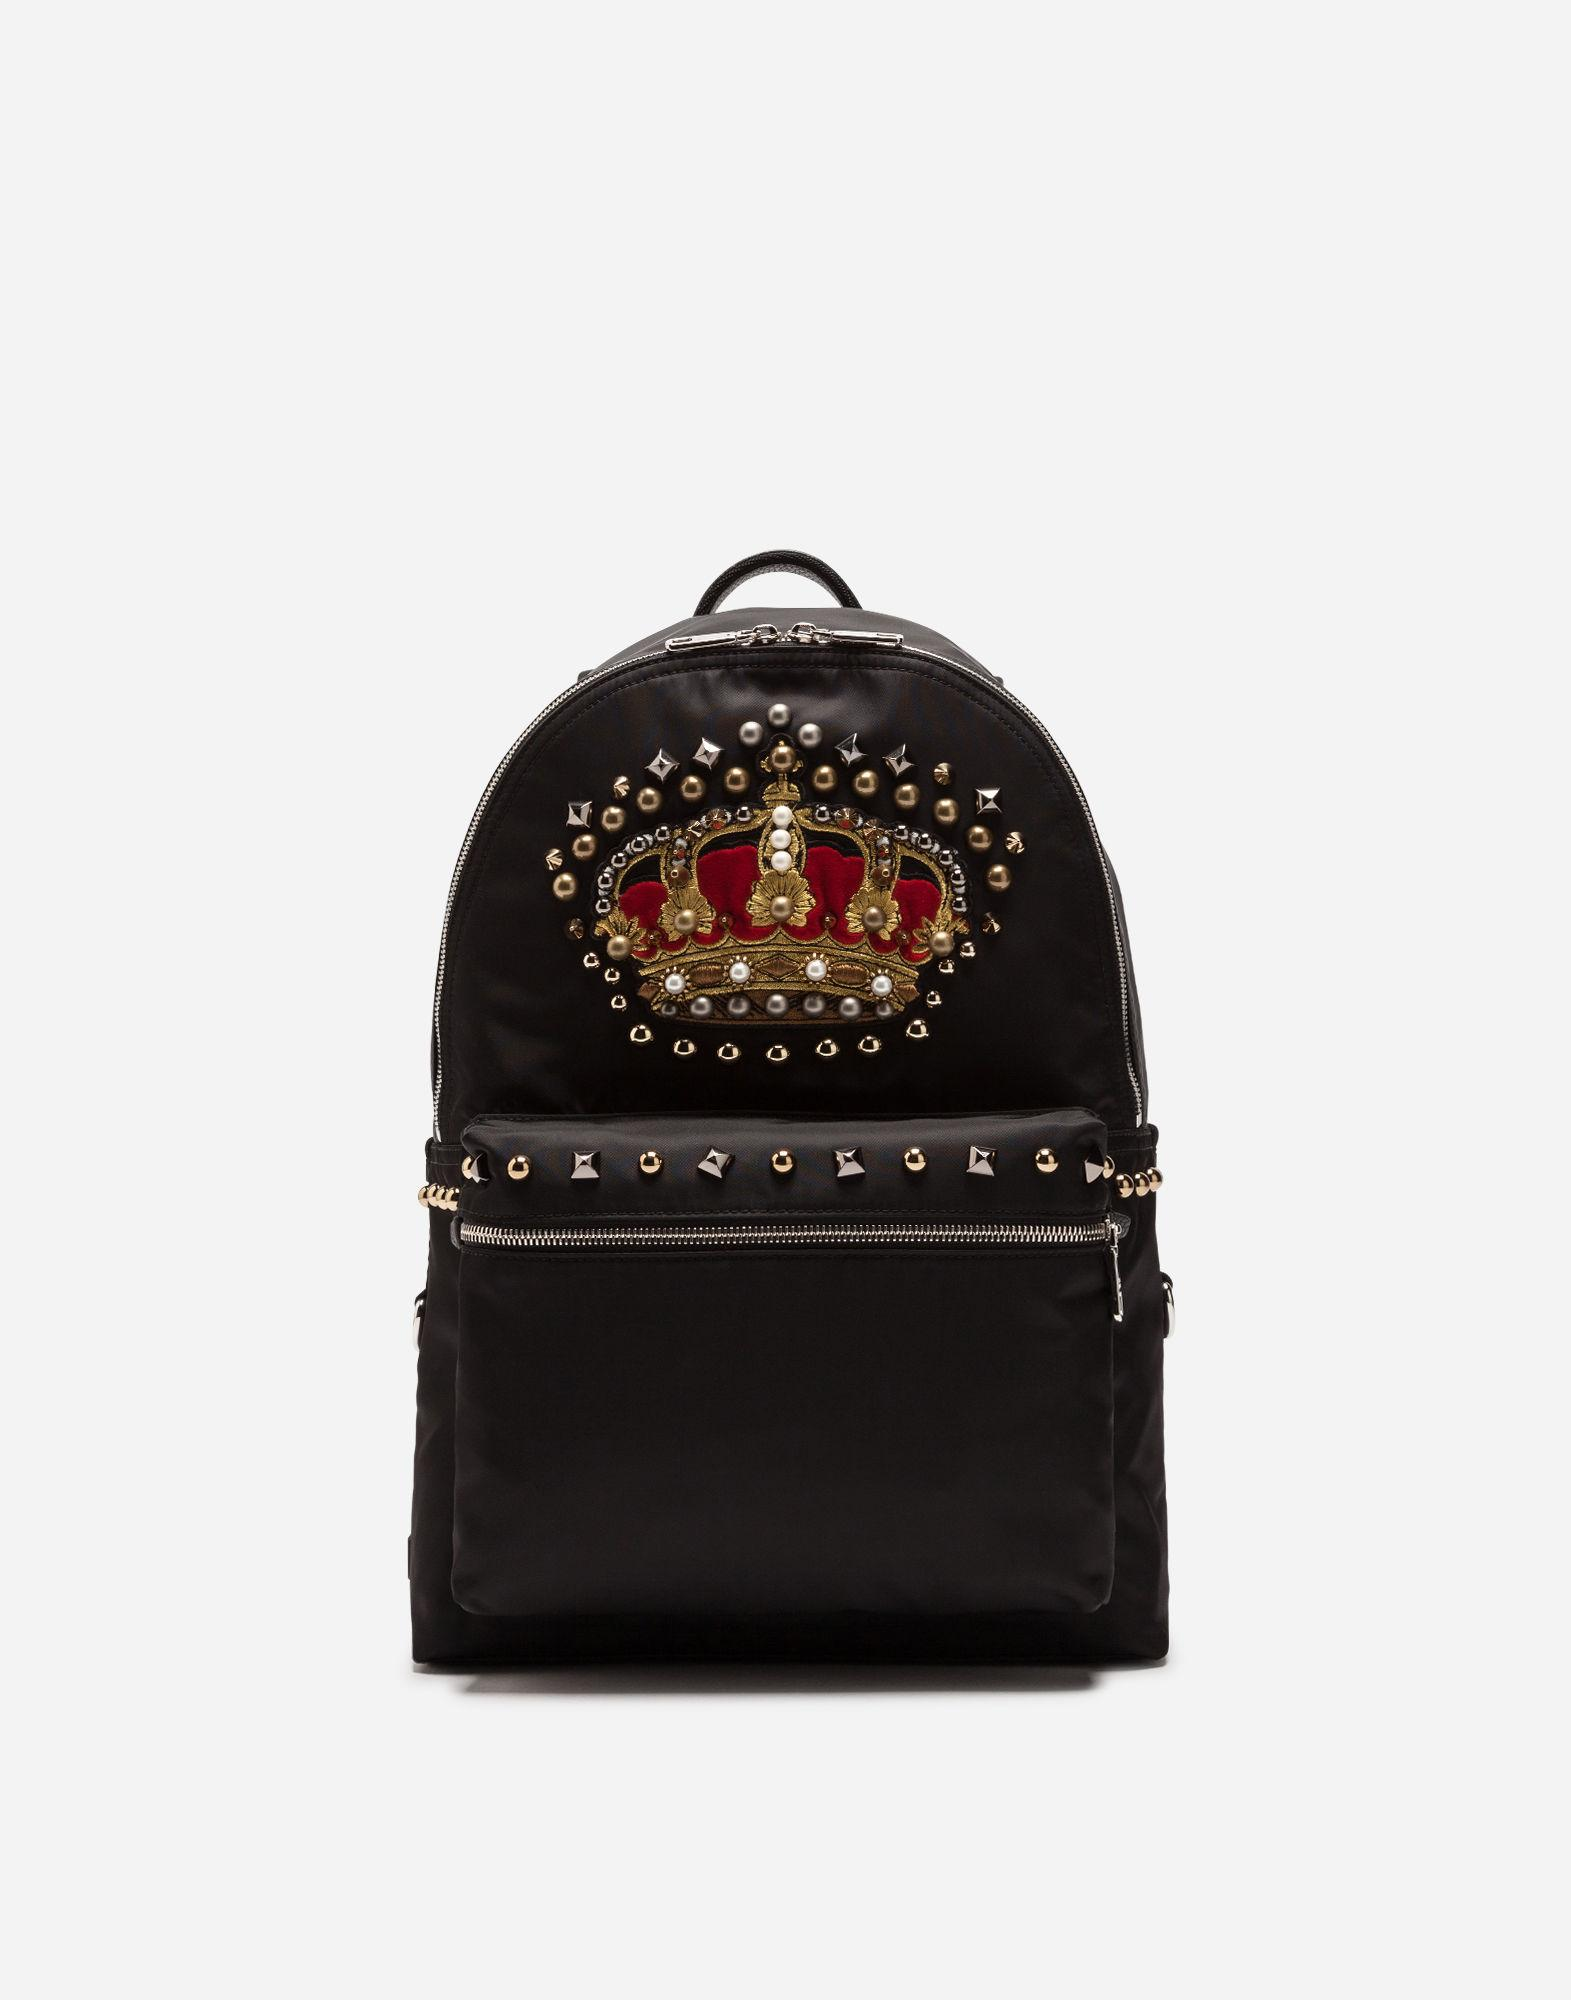 2f4a8210be Dolce   Gabbana Nylon Vulcano Backpack With Crown Patch In Multi ...